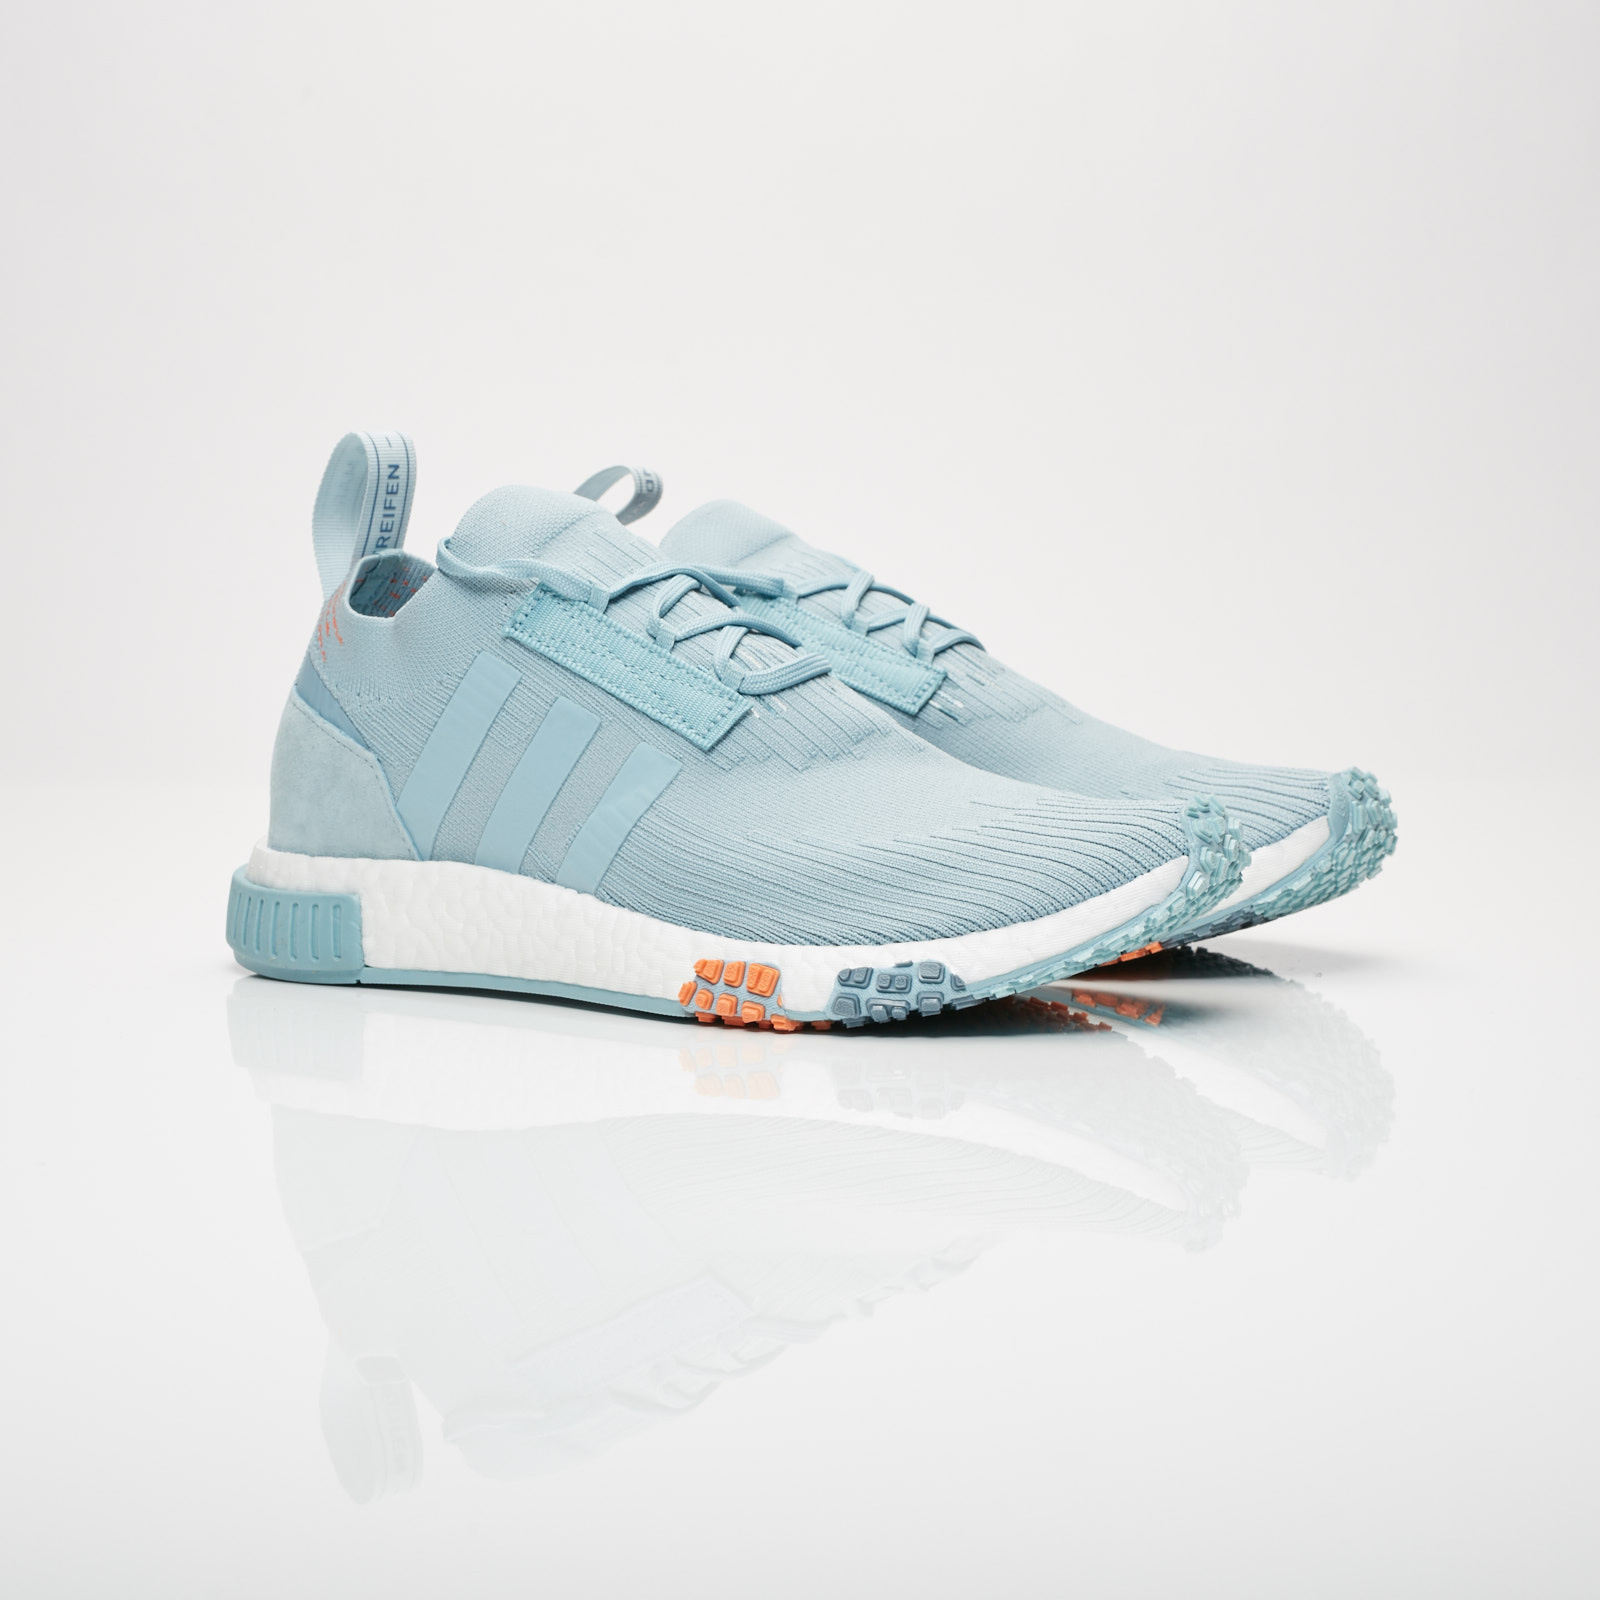 adidas NMD Racer PK W Cq2032 Sneakersnstuff I Sneakers